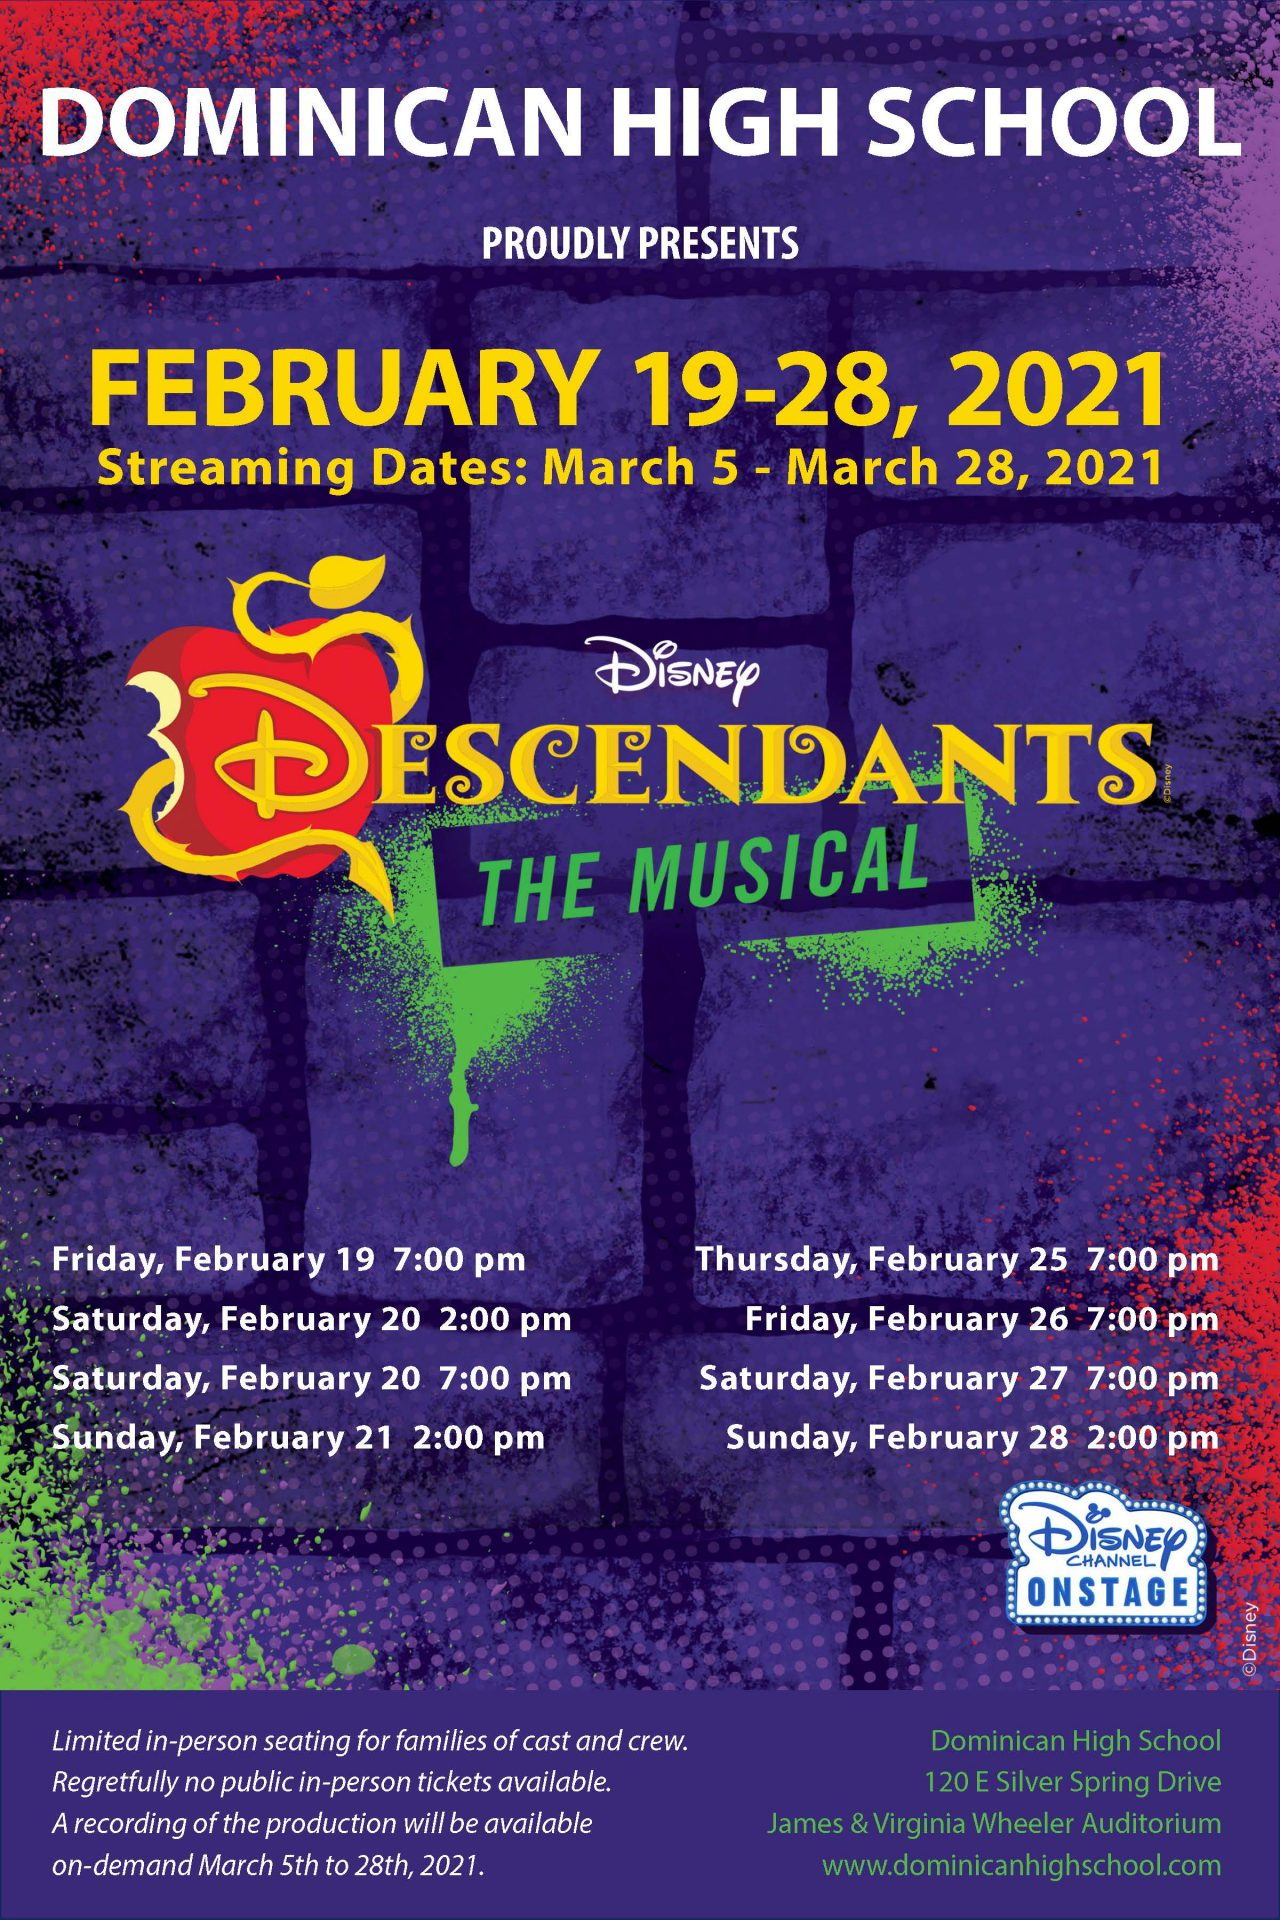 descendants-poster-draft2.pdf11